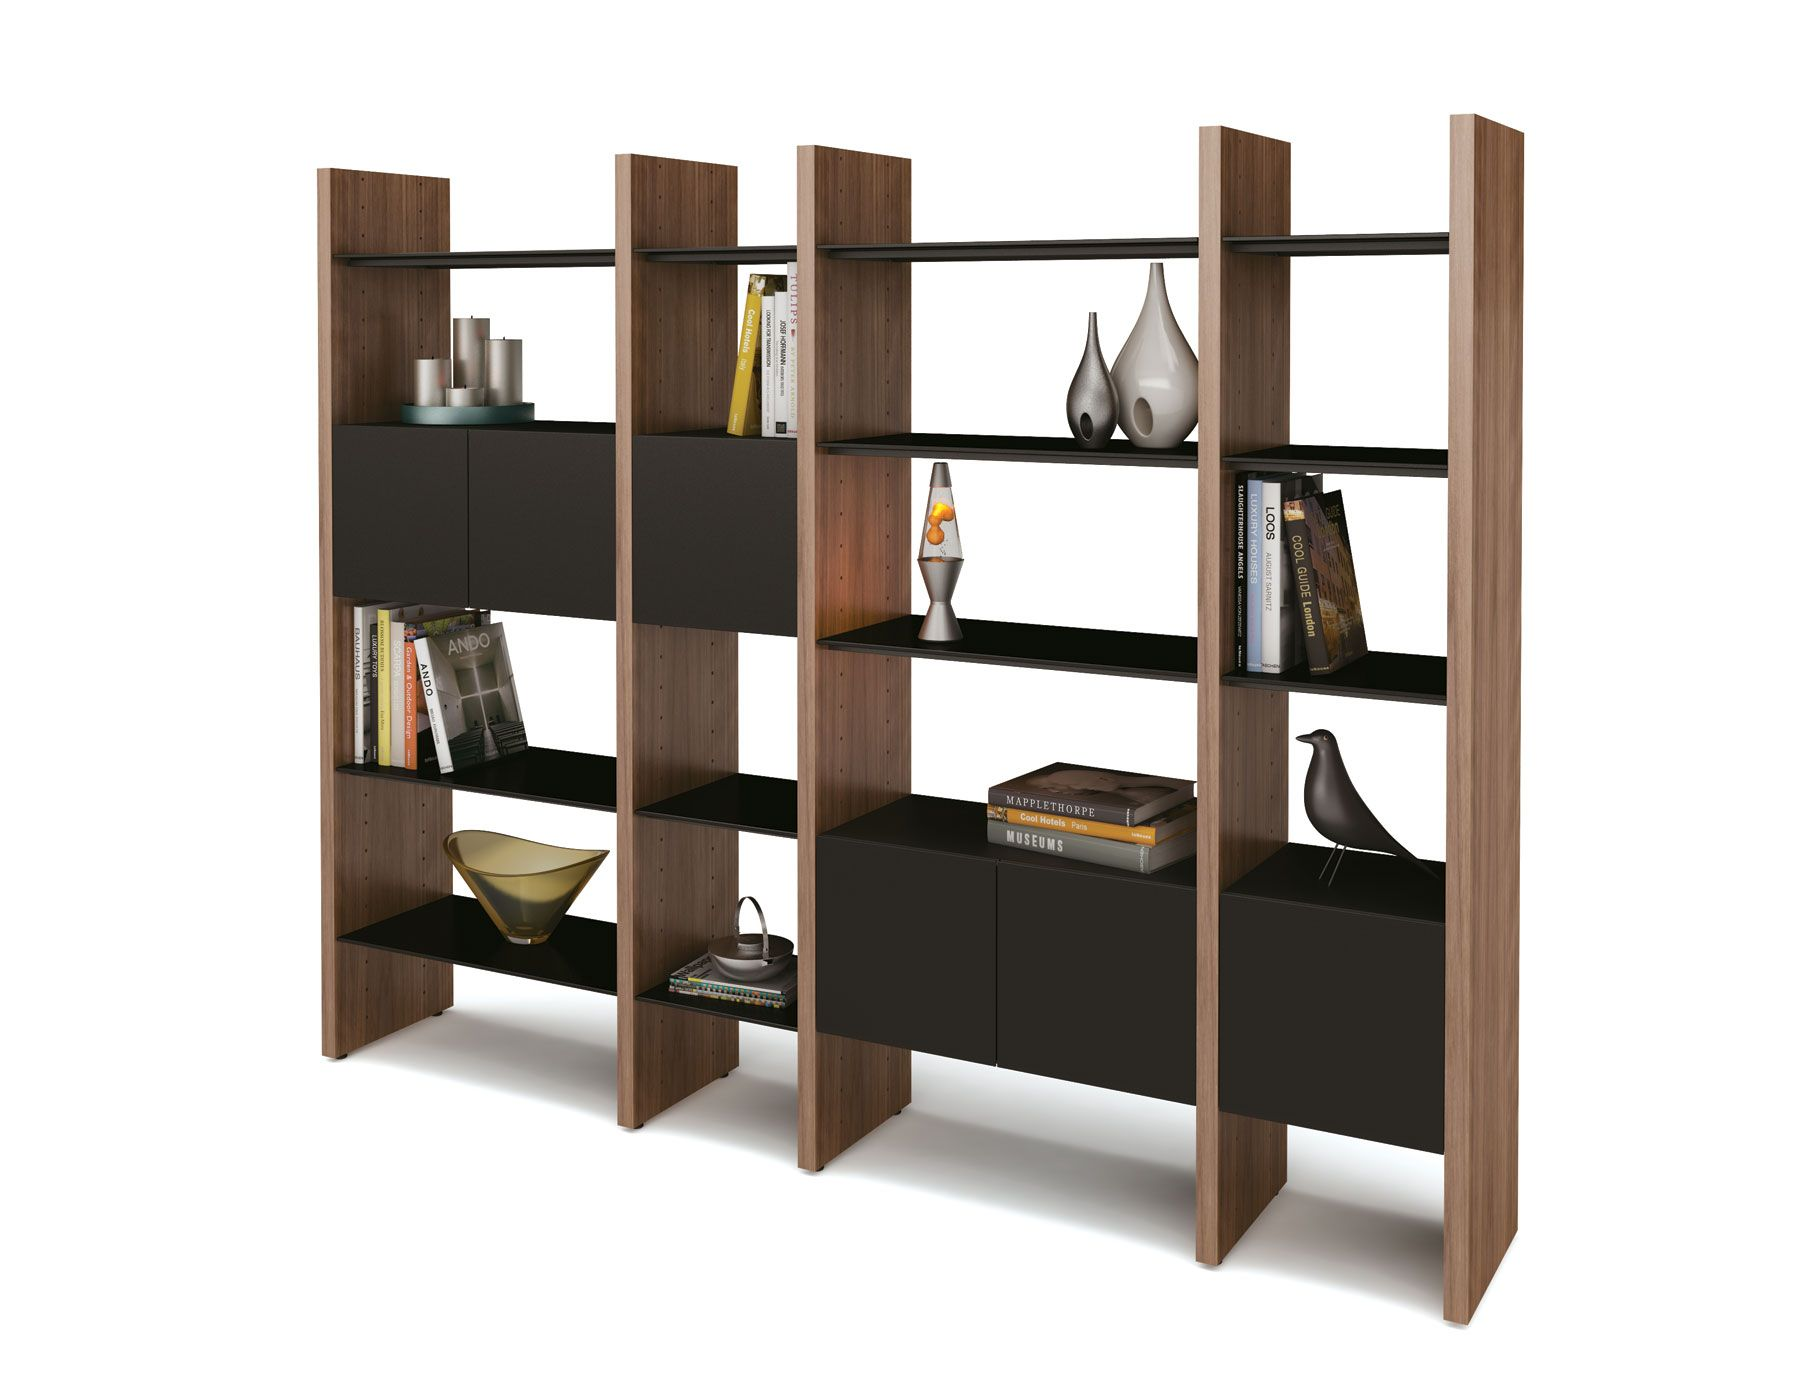 Enchanting Wooden Modular Shelving Unit Design Idea With Walnut Wood Frames And Black Shelves